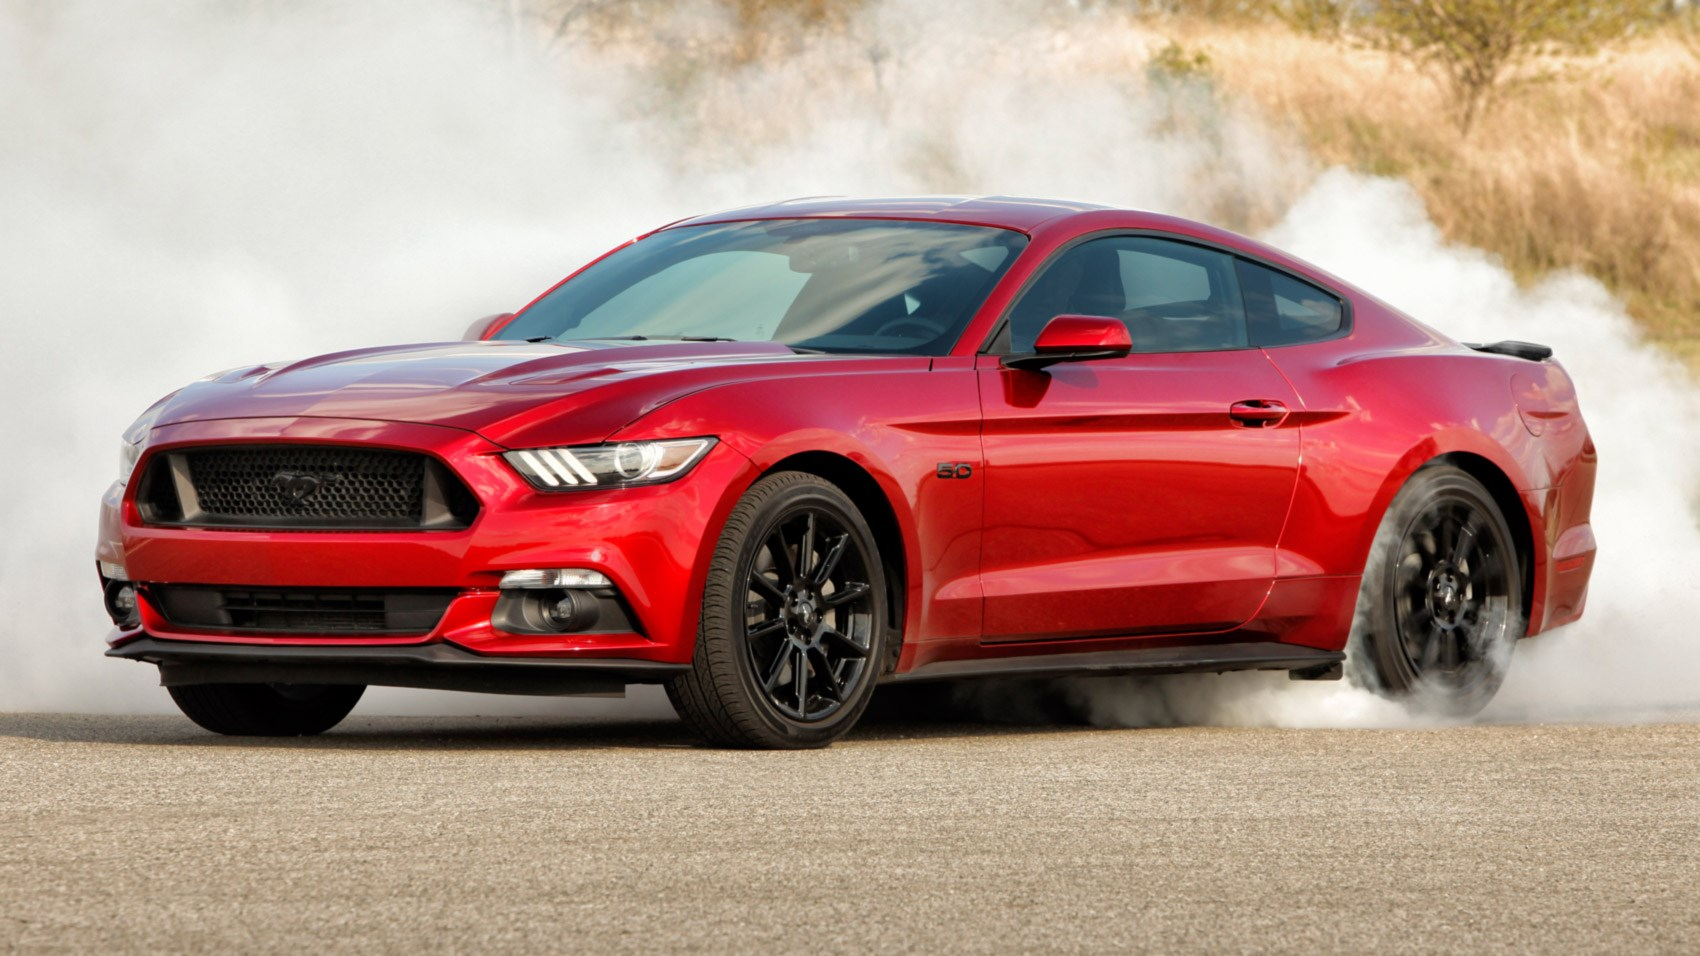 Parfait 2016 Ford Mustang Photos, Informations, Articles - BestCarMag.com MH91